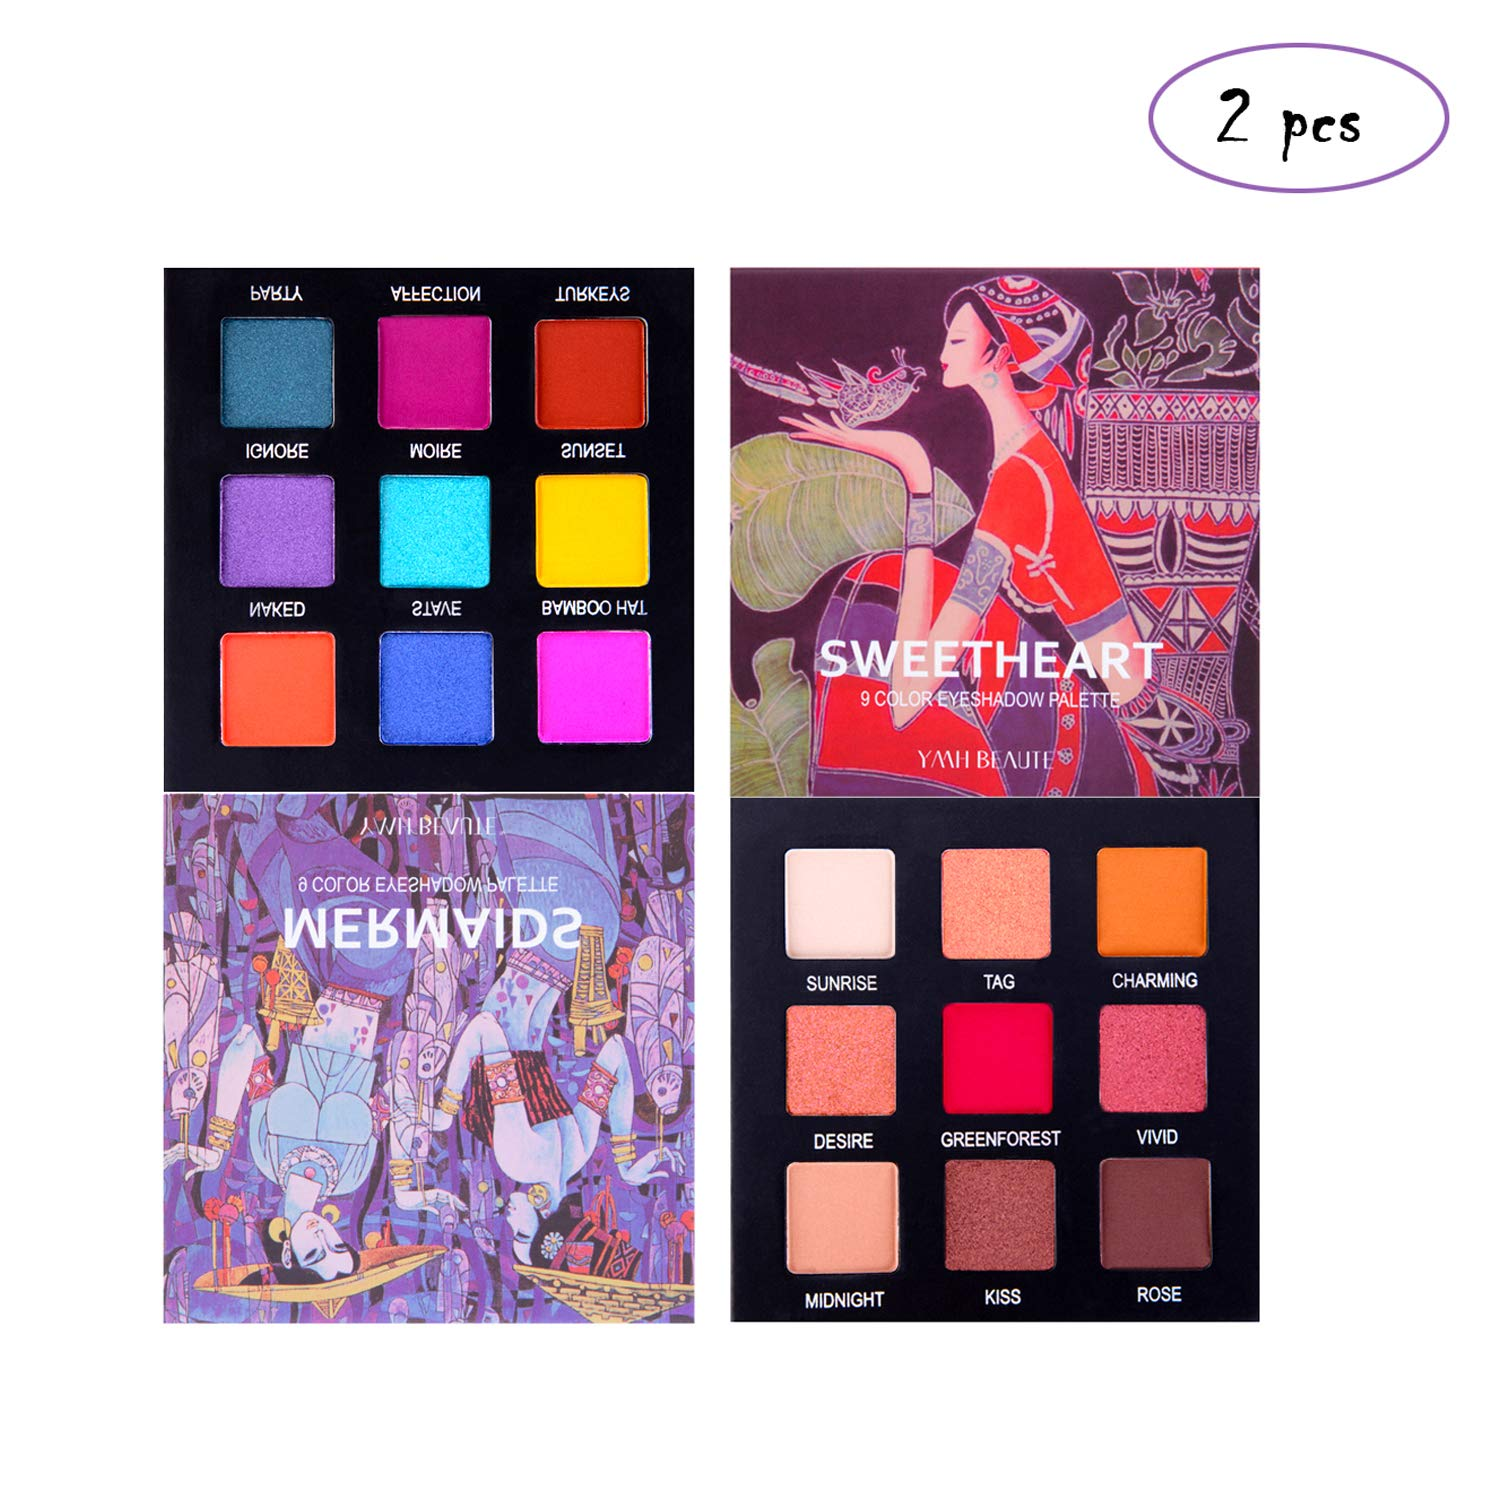 Highly Pigmented Eyeshadow Palette - YMH BEAUTE 9 Bright Colors Eye Shadow Palettes Matte Shimmer Eyeshadow Makeup Palette Long Lasting Cosmetics, Cruelty-free (Mermaids + Sweetheart)